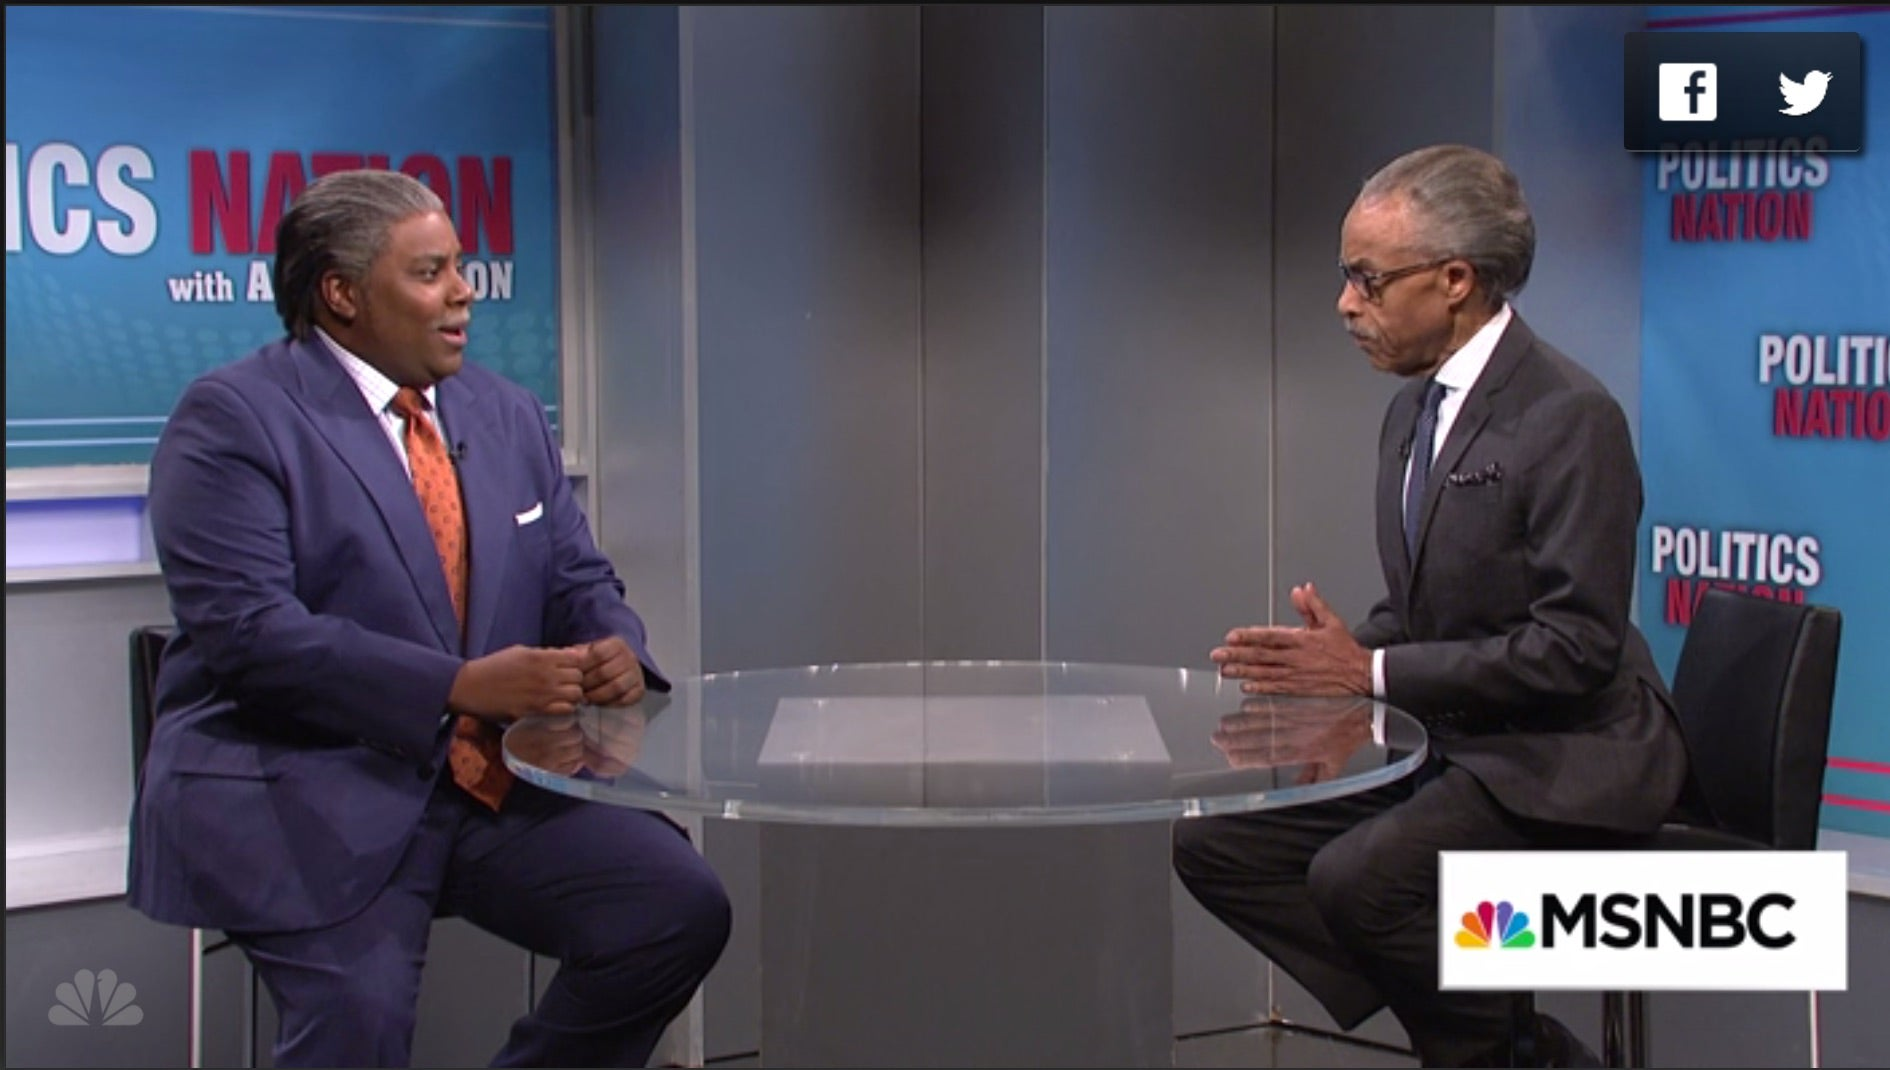 The Real Al Sharpton Comes Face to Face with Kenan Thompson's Al Sharpton on 'SNL'